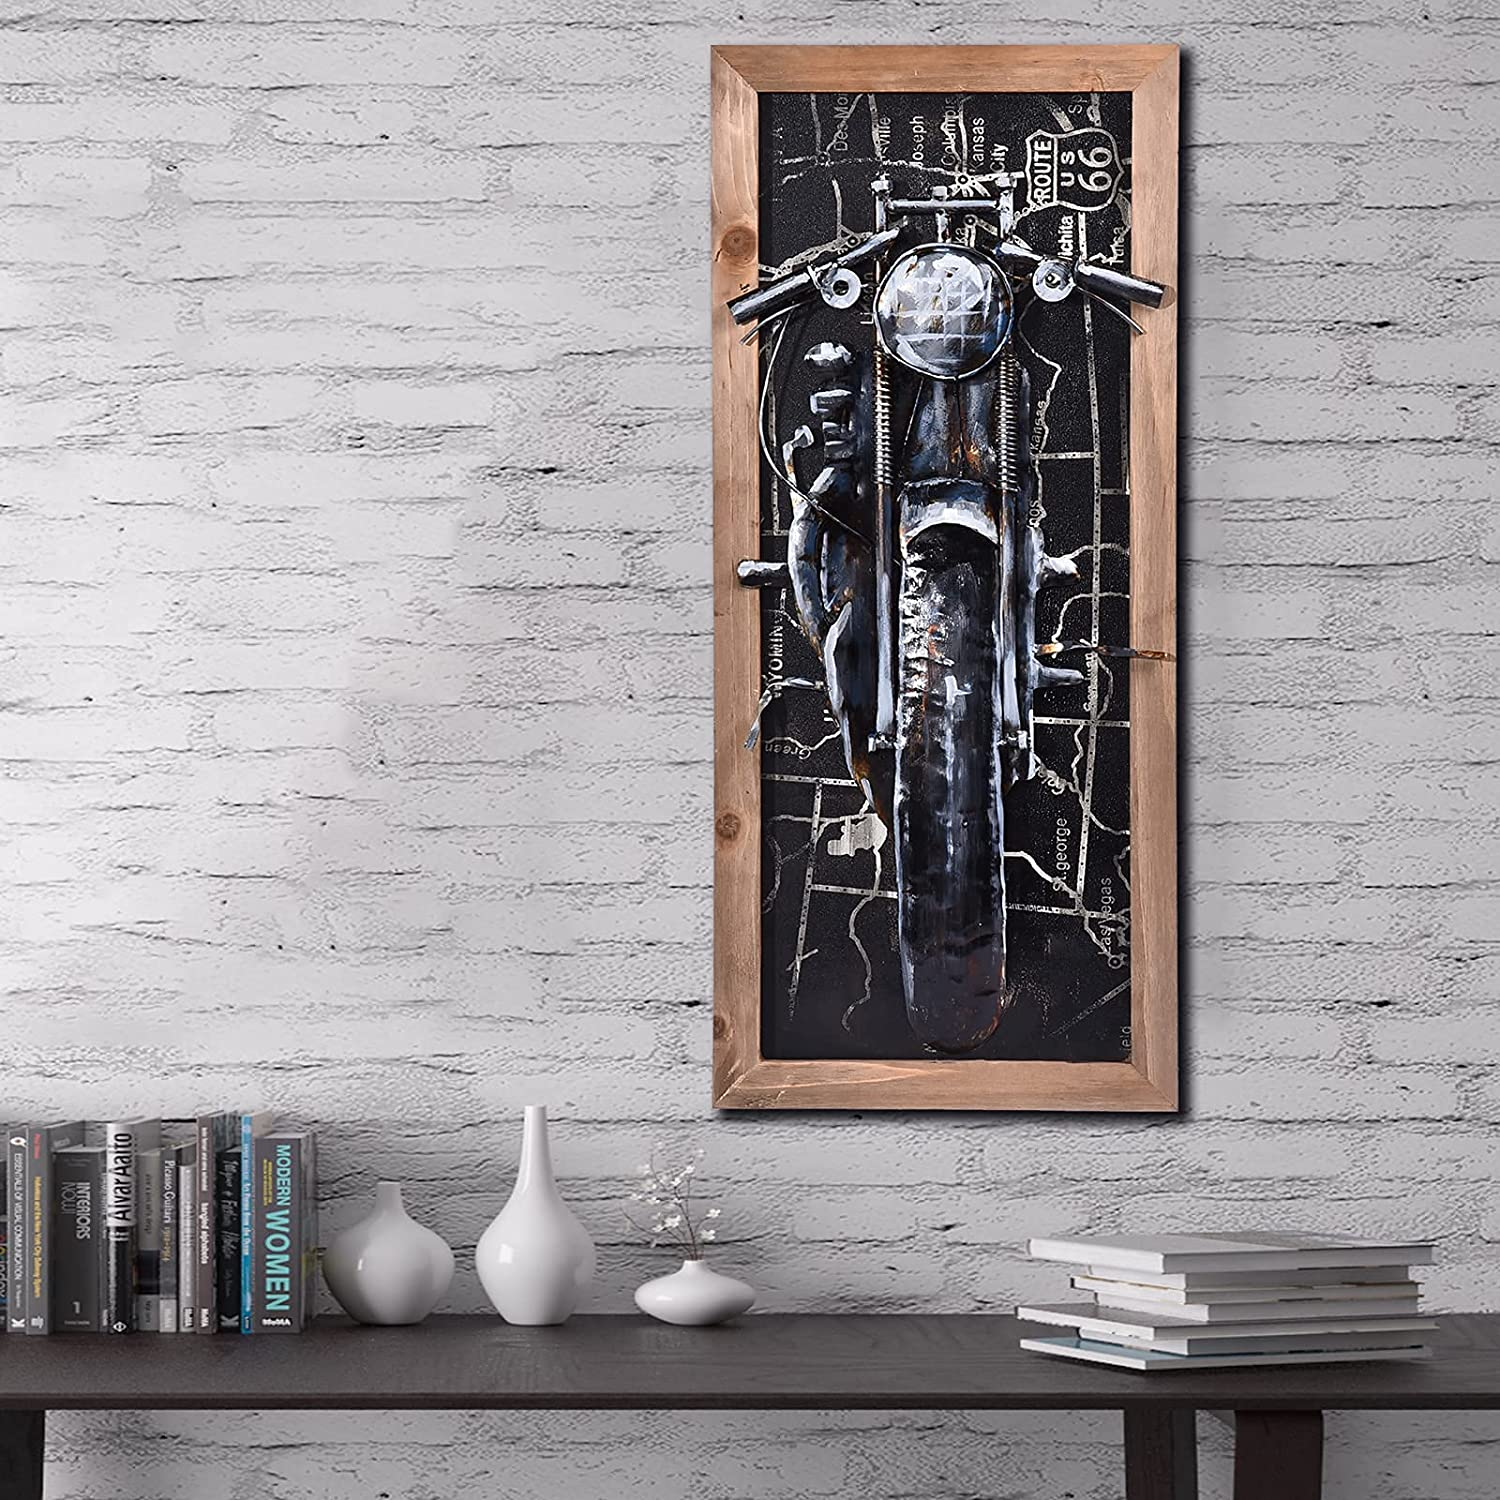 SunBlogs Art 3D Metal Wall Art Hand-painted Oil Paintings Motorbike Wall Decor, Cabin Decor Large Handmade Motorcycle Sculpture for Living Room Bedroom Kitchen Decorations (Style 2)